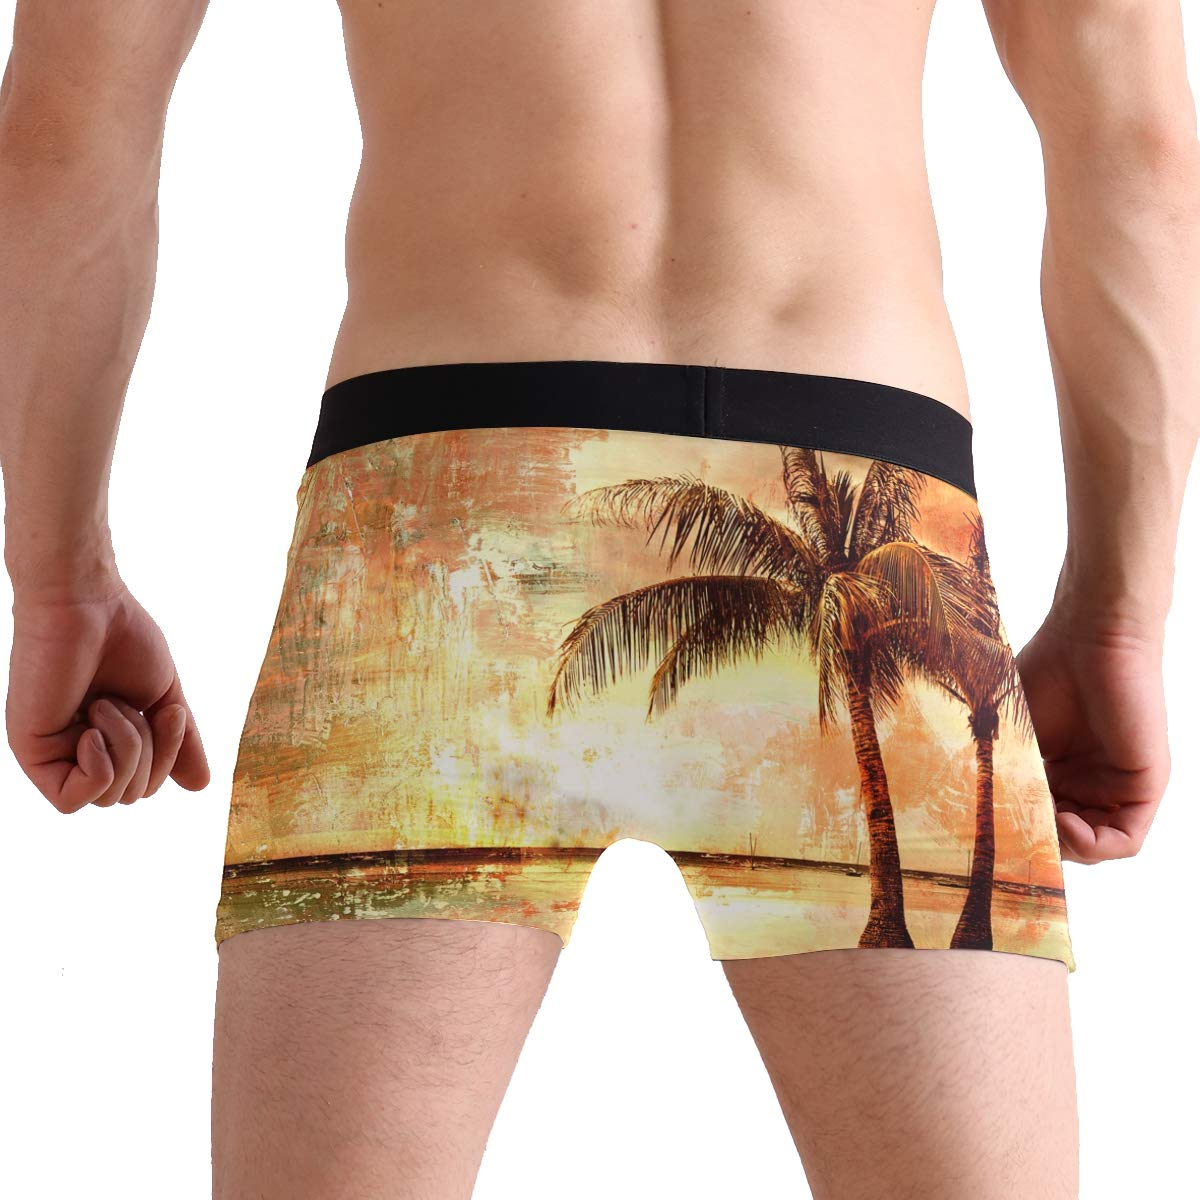 Oil Painting Coconut Tree Sunset Mens Underwear Soft Polyester Boxer Brief for Men Adult Teen Children Kids S